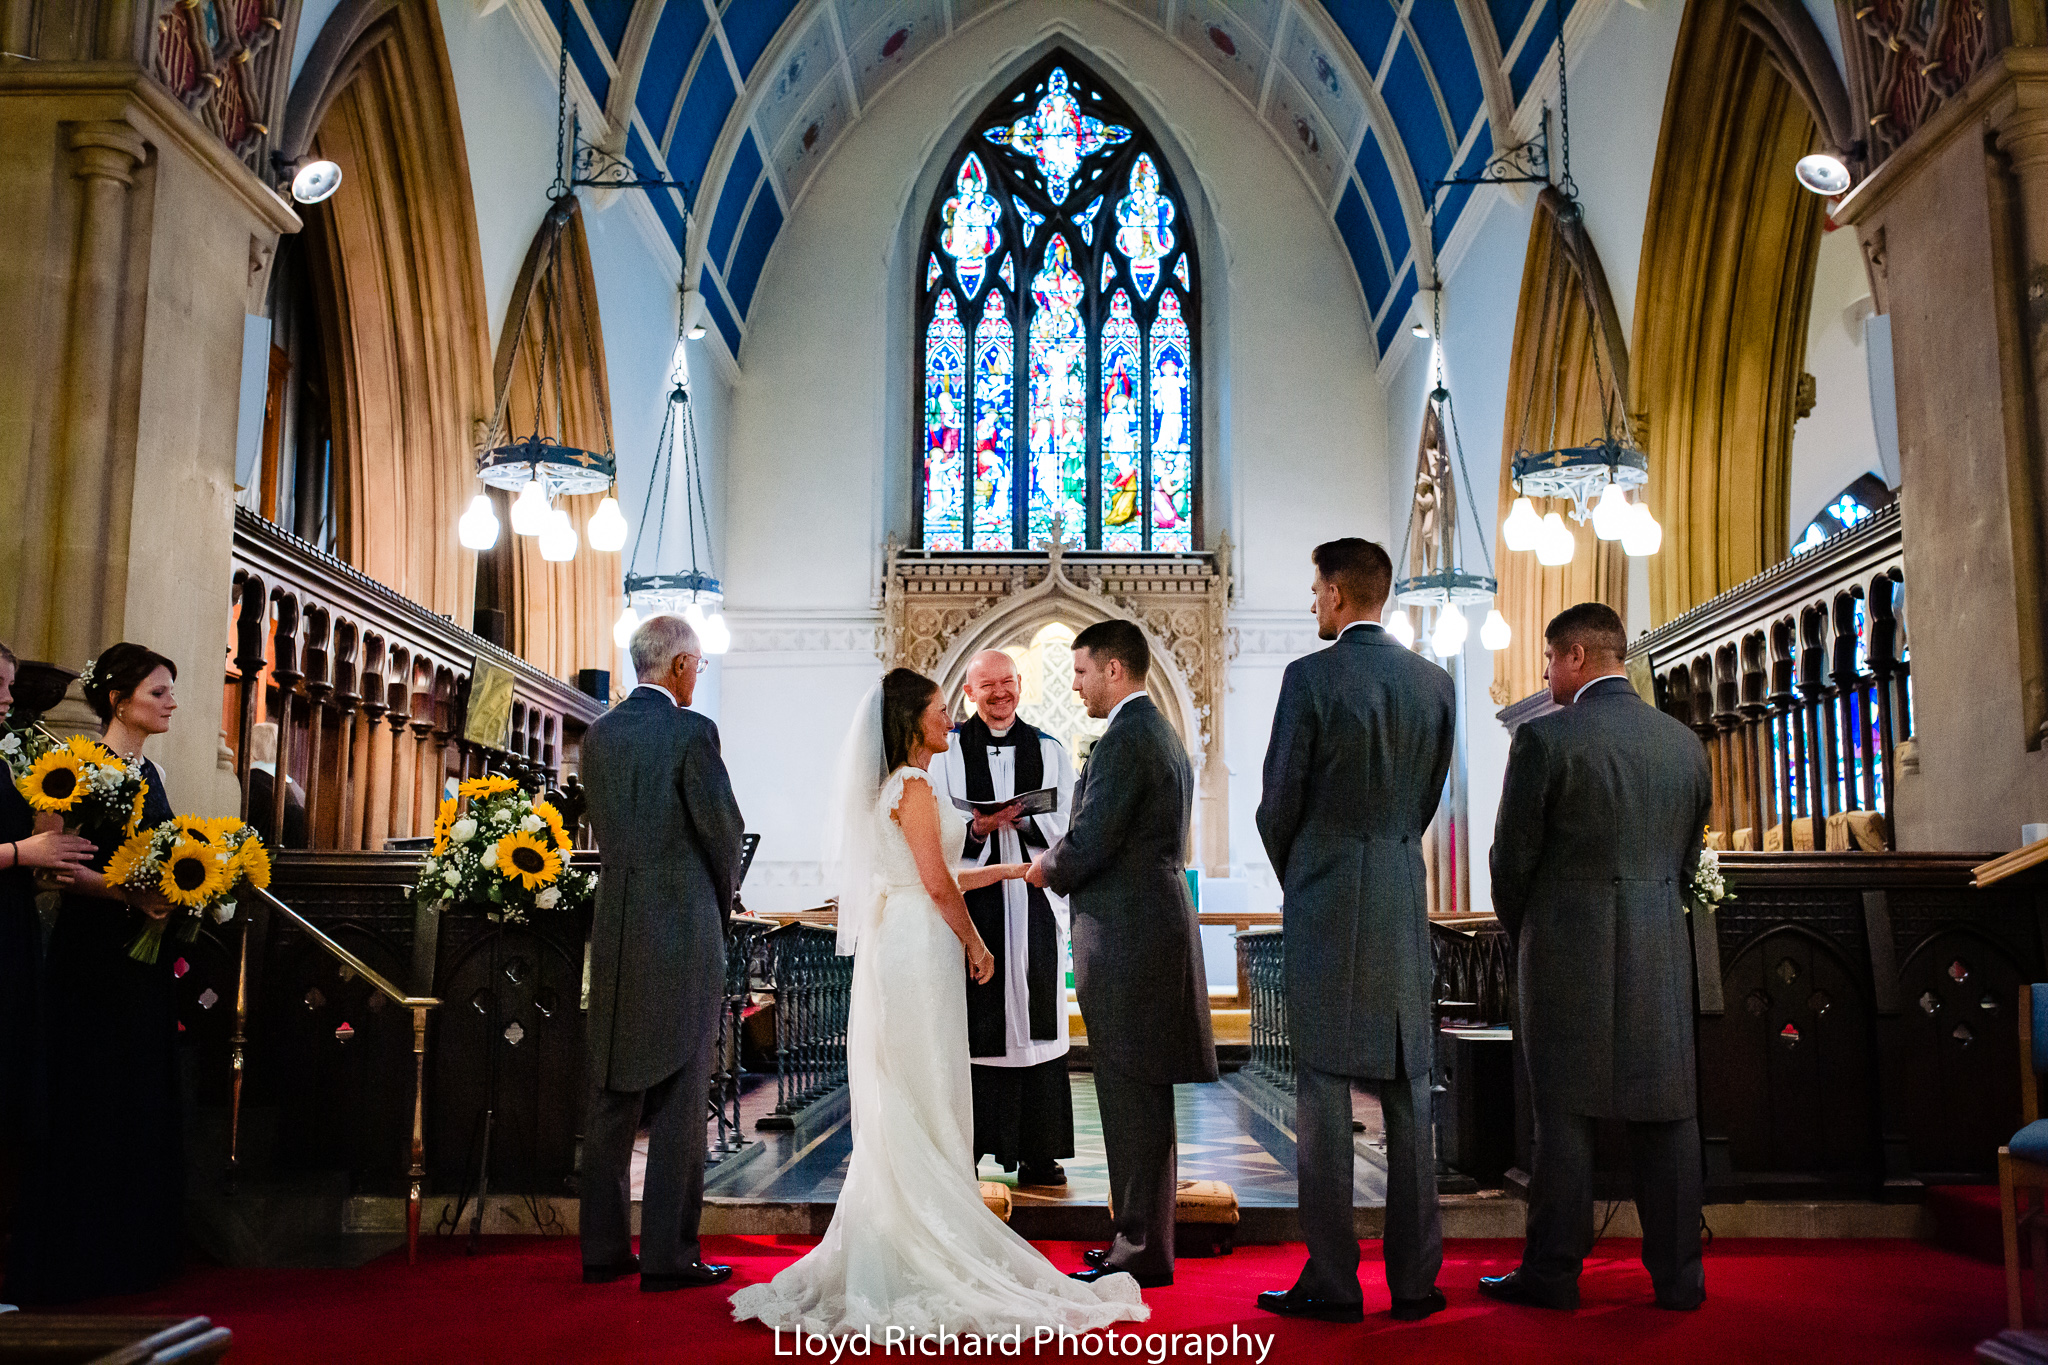 Saying vows at St Mary's church Gosport